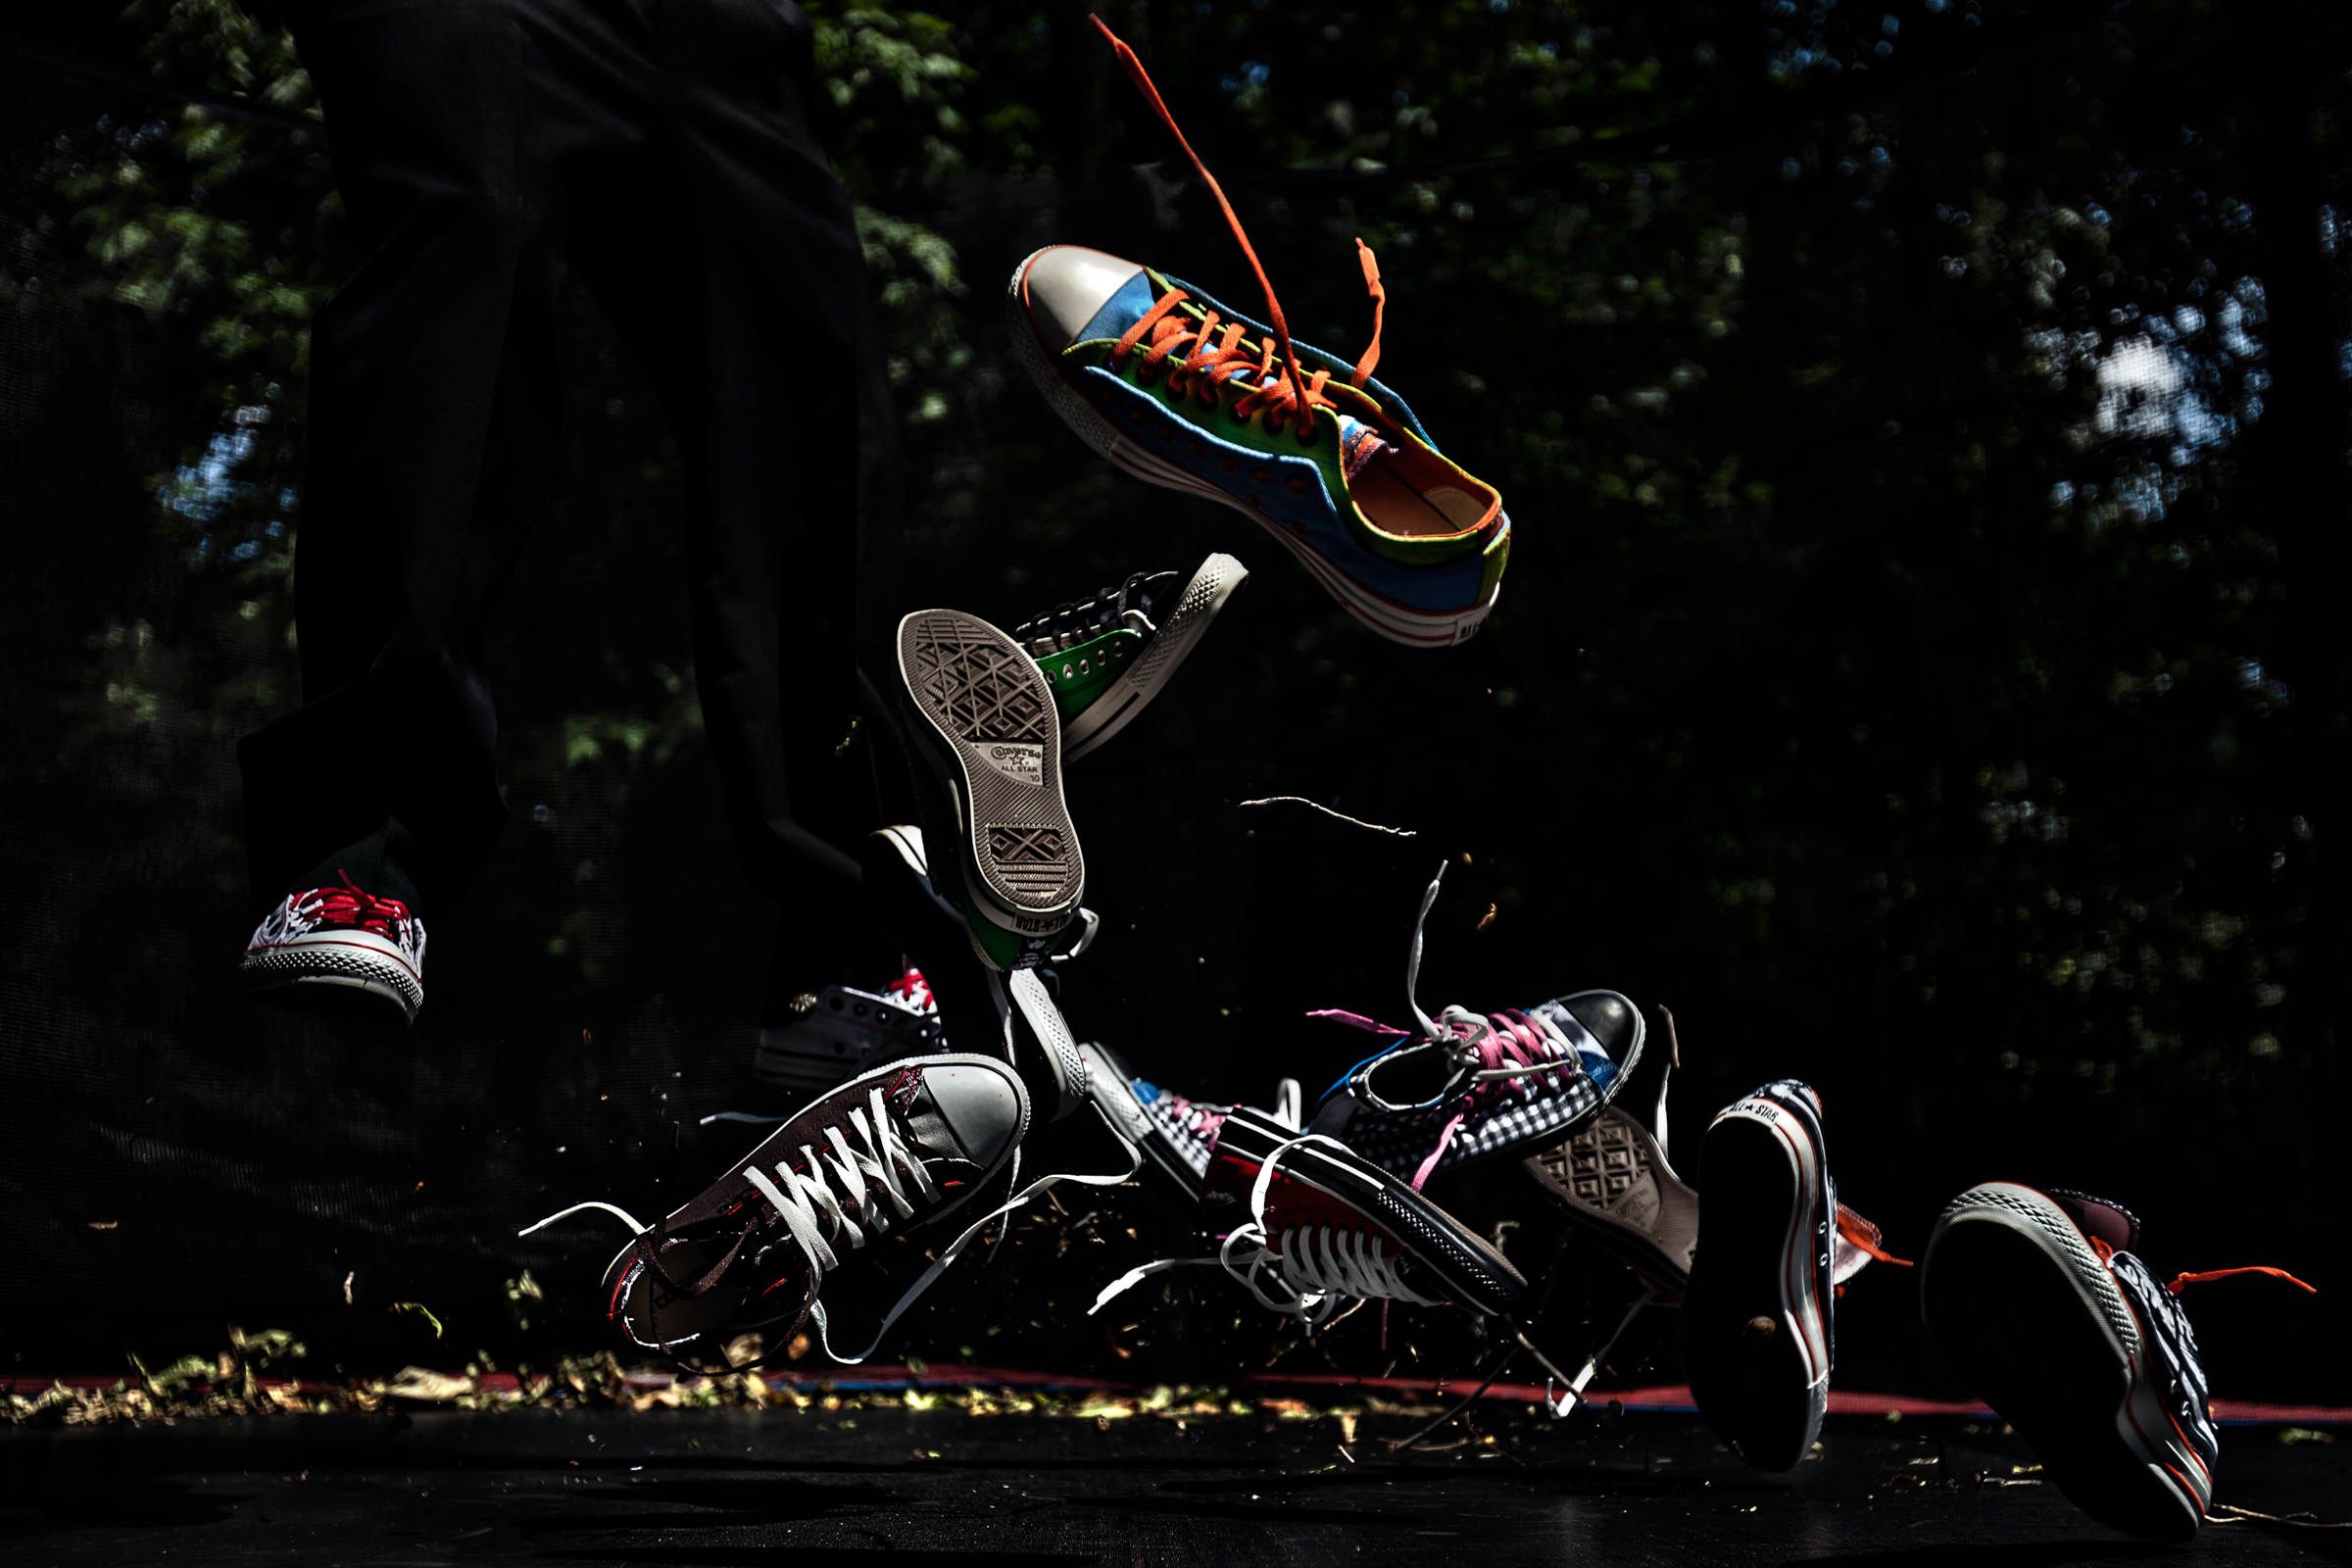 Airborne sneakers - photo by JAGstudios